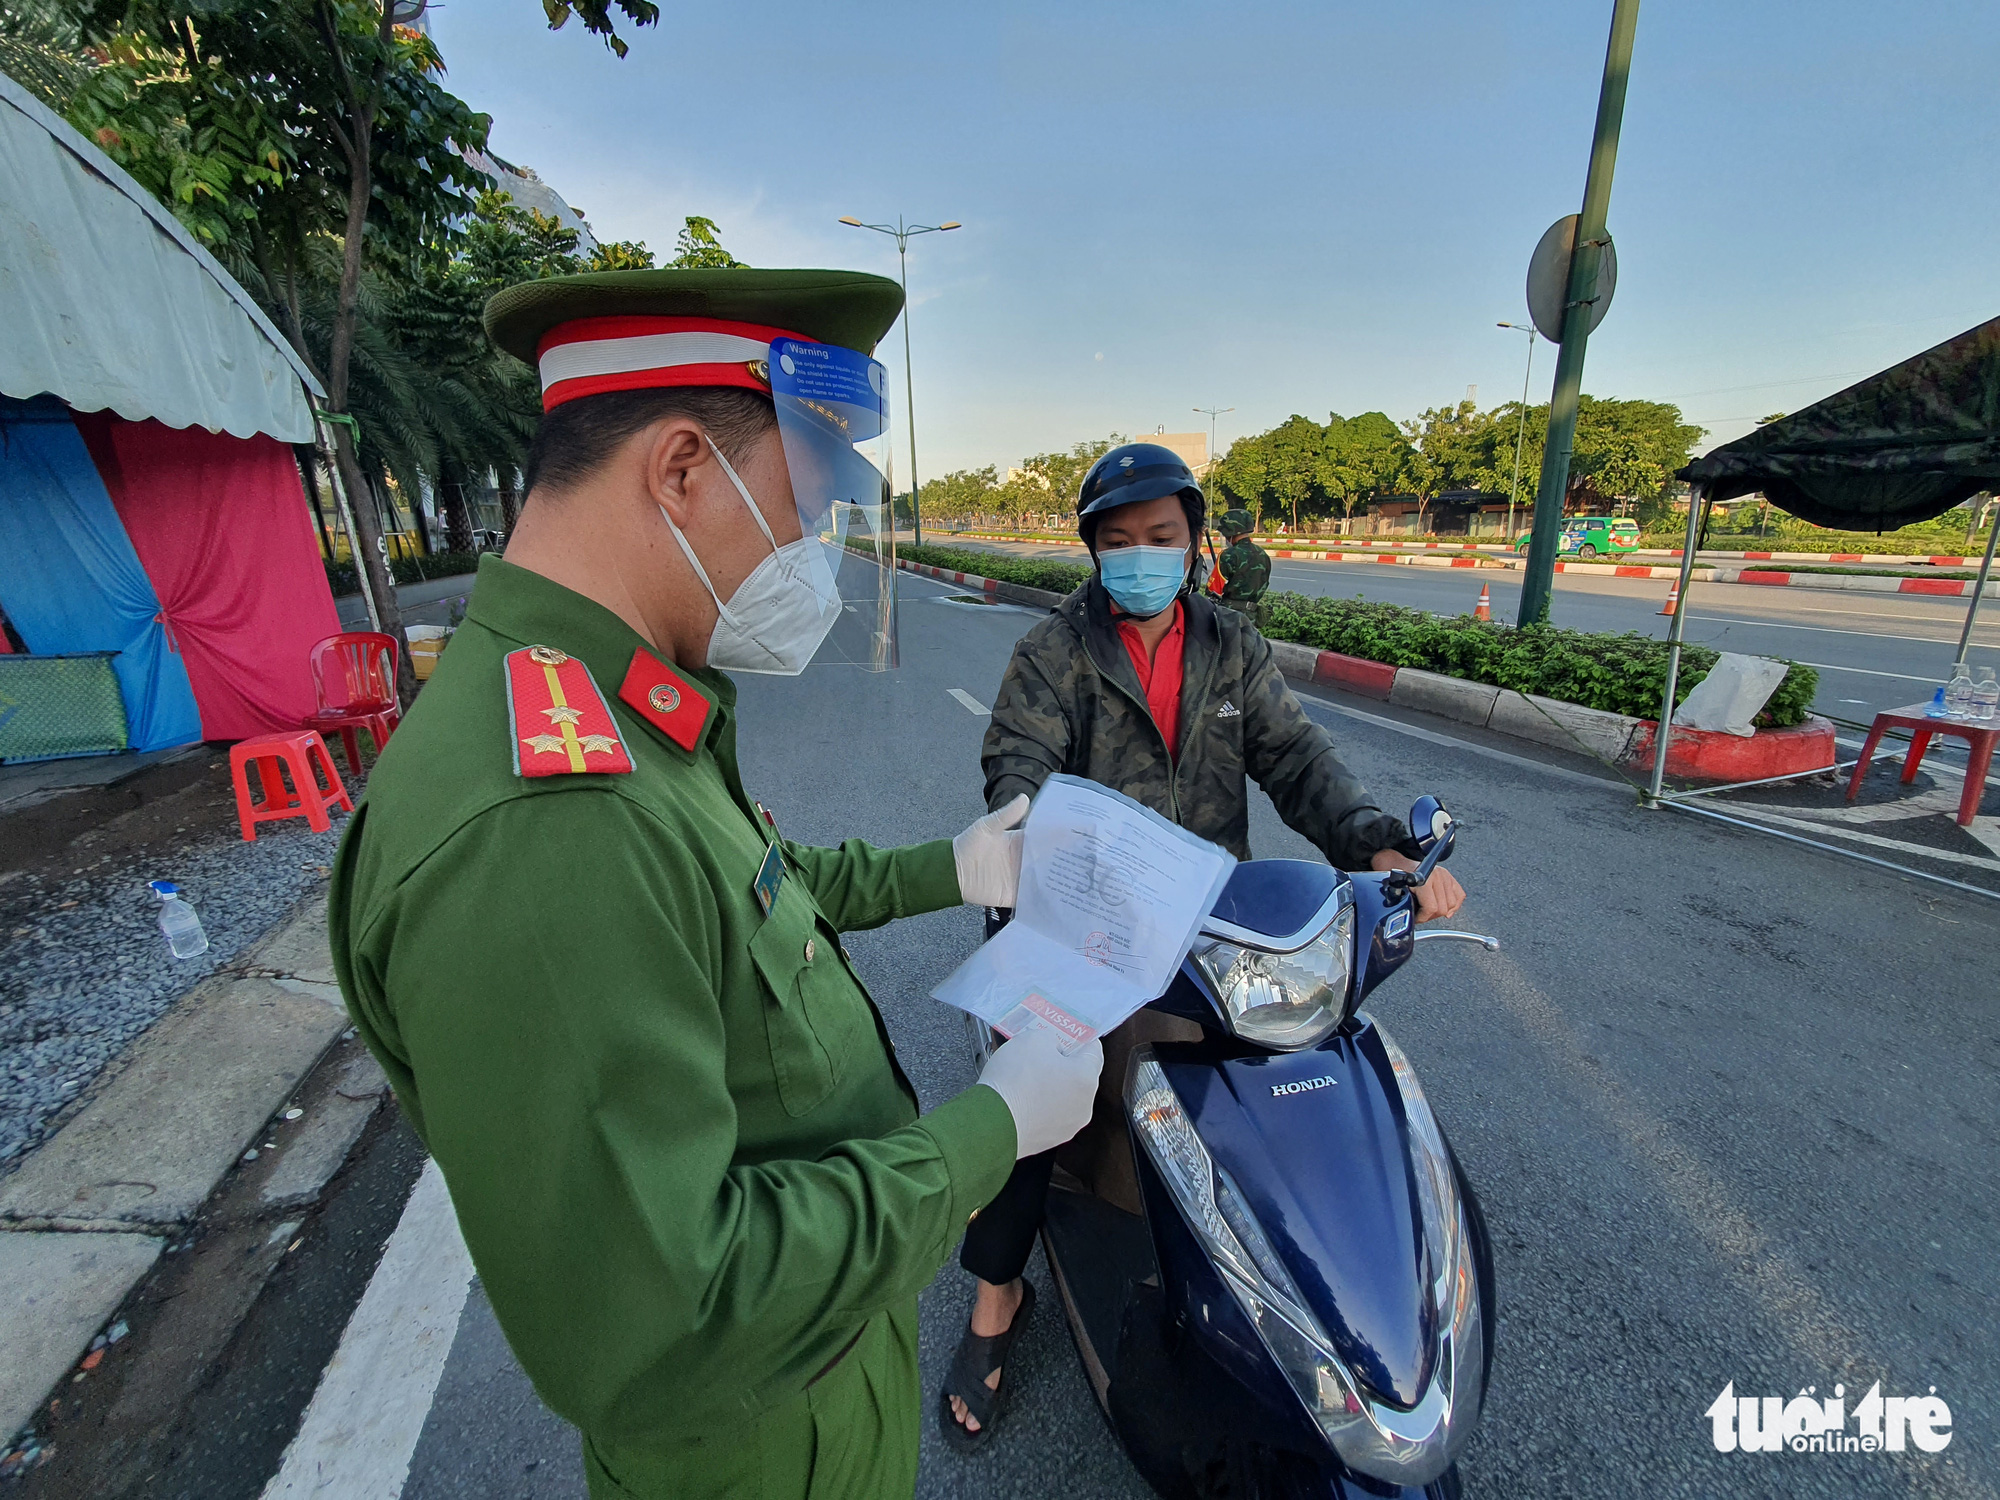 An officer examines documents of a resident in Binh Thanh District, Ho Chi Minh City, August 24, 2021. Photo: Minh Hoa / Tuoi Tre